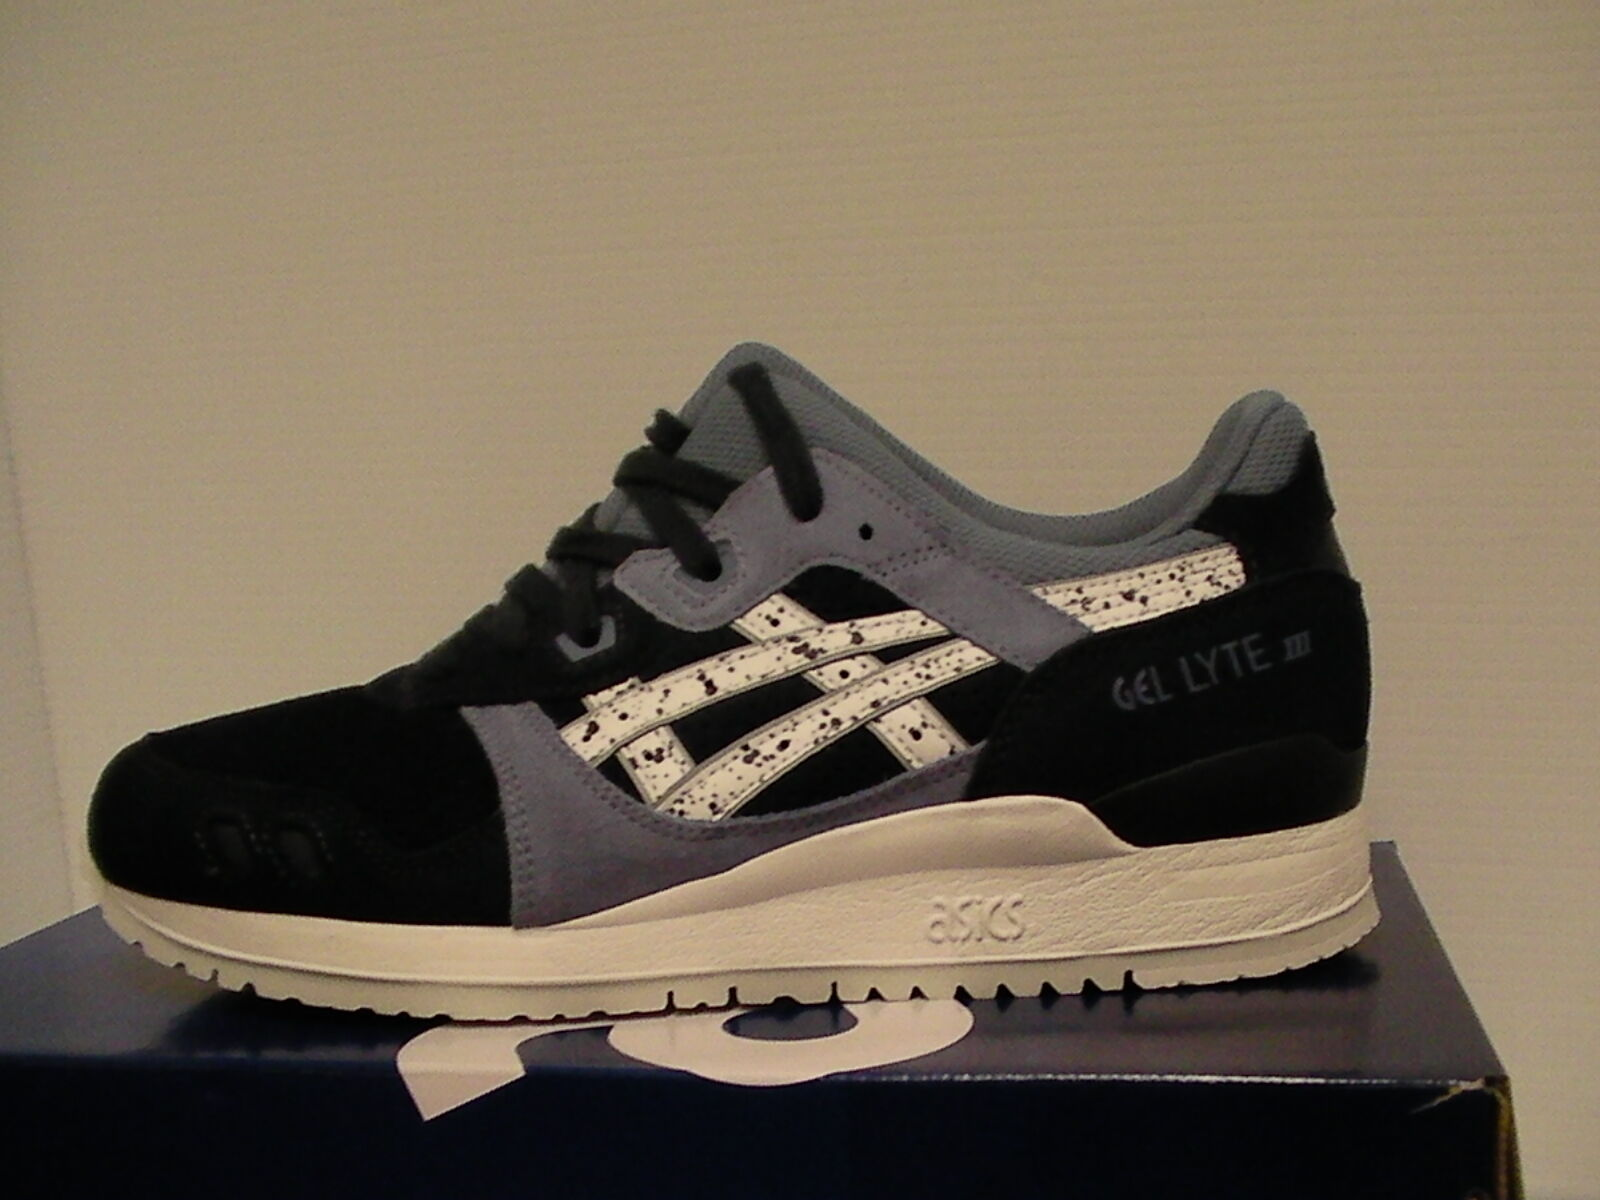 Asics running running running shoes gel-lyte iii size 10.5 us Uomo indian ink/white new with box 927f4f